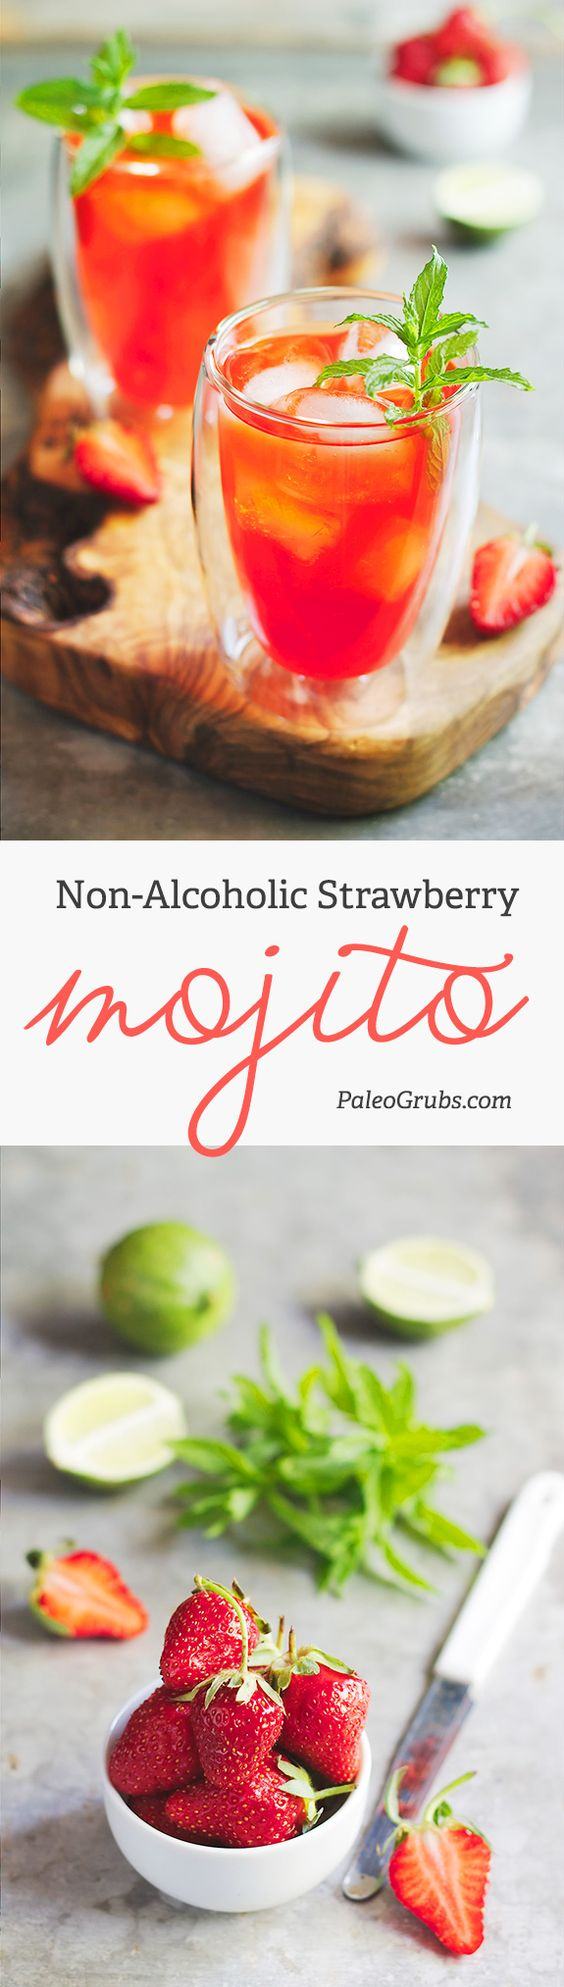 Non-Alcoholic Paleo Strawberry Mojitos Drink Recipe via Paleo Grubs - In this non-alcoholic strawberry mojito you're getting antioxidants from mint and strawberries, as well as Vitamin C from lime. Try it! It is so refreshing, wholesome and perfect for a hot day. The BEST Easy Non-Alcoholic Drinks Recipes - Creative Mocktails and Family Friendly, Alcohol-Free, Big Batch Party Beverages for a Crowd! #mocktails #virgindrinks #alcoholfreedrinks #nonalcoholicdrinks #familyfriendlydrinks #partypunch #partydrinks #newyearseve #partydrinkrecipes